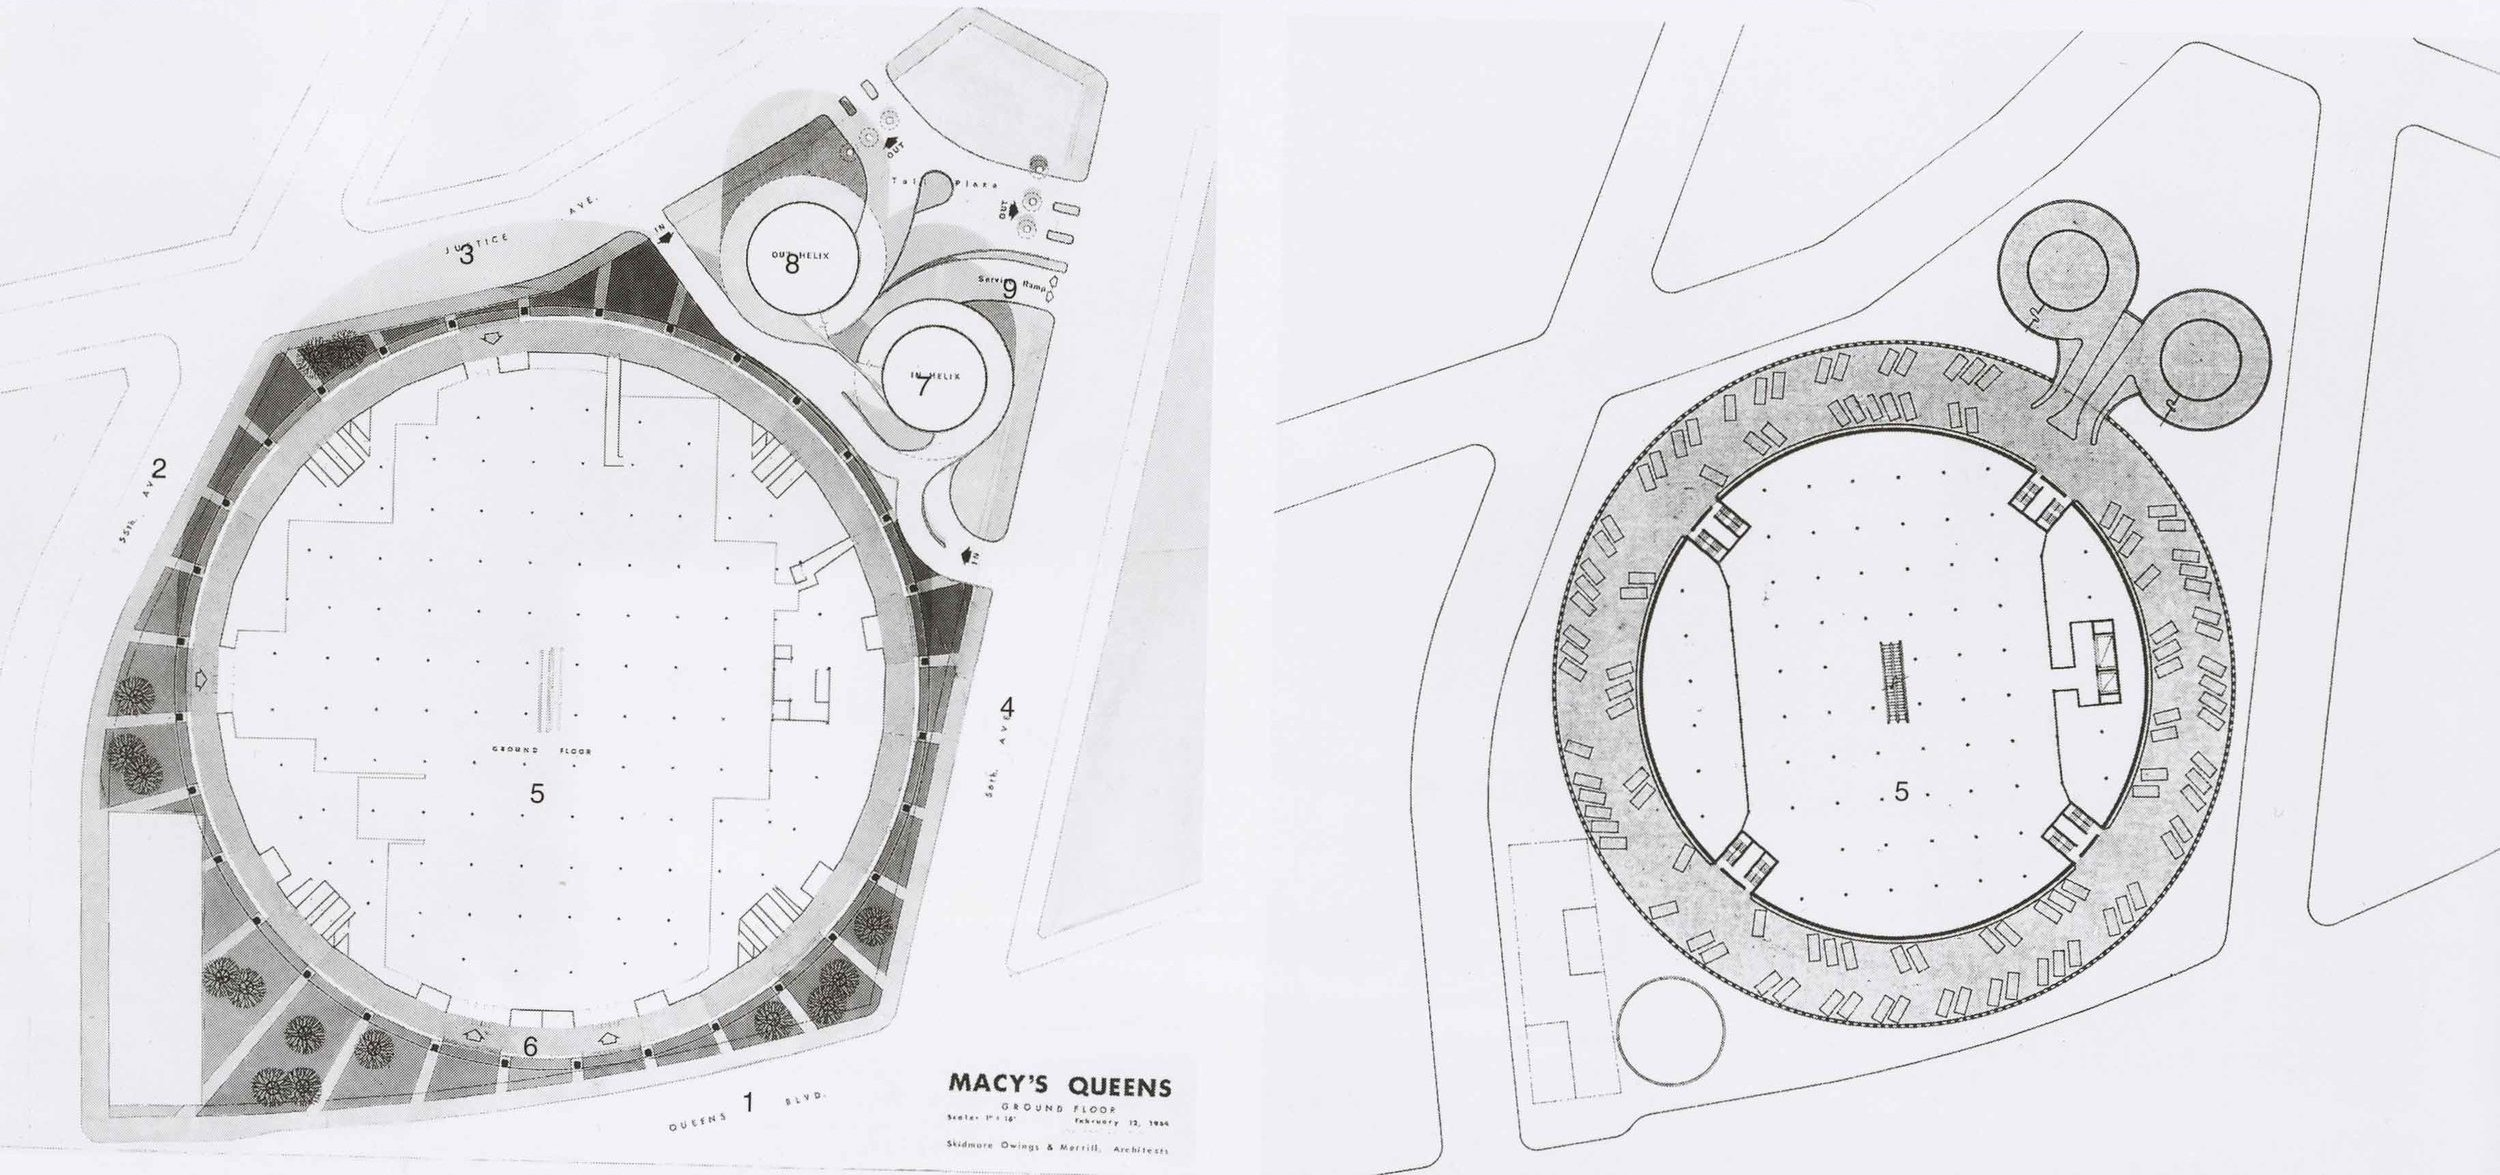 Macy's ground floor site plan (left) and parking (right). Credit:Skidmore, Owings & Merrill.